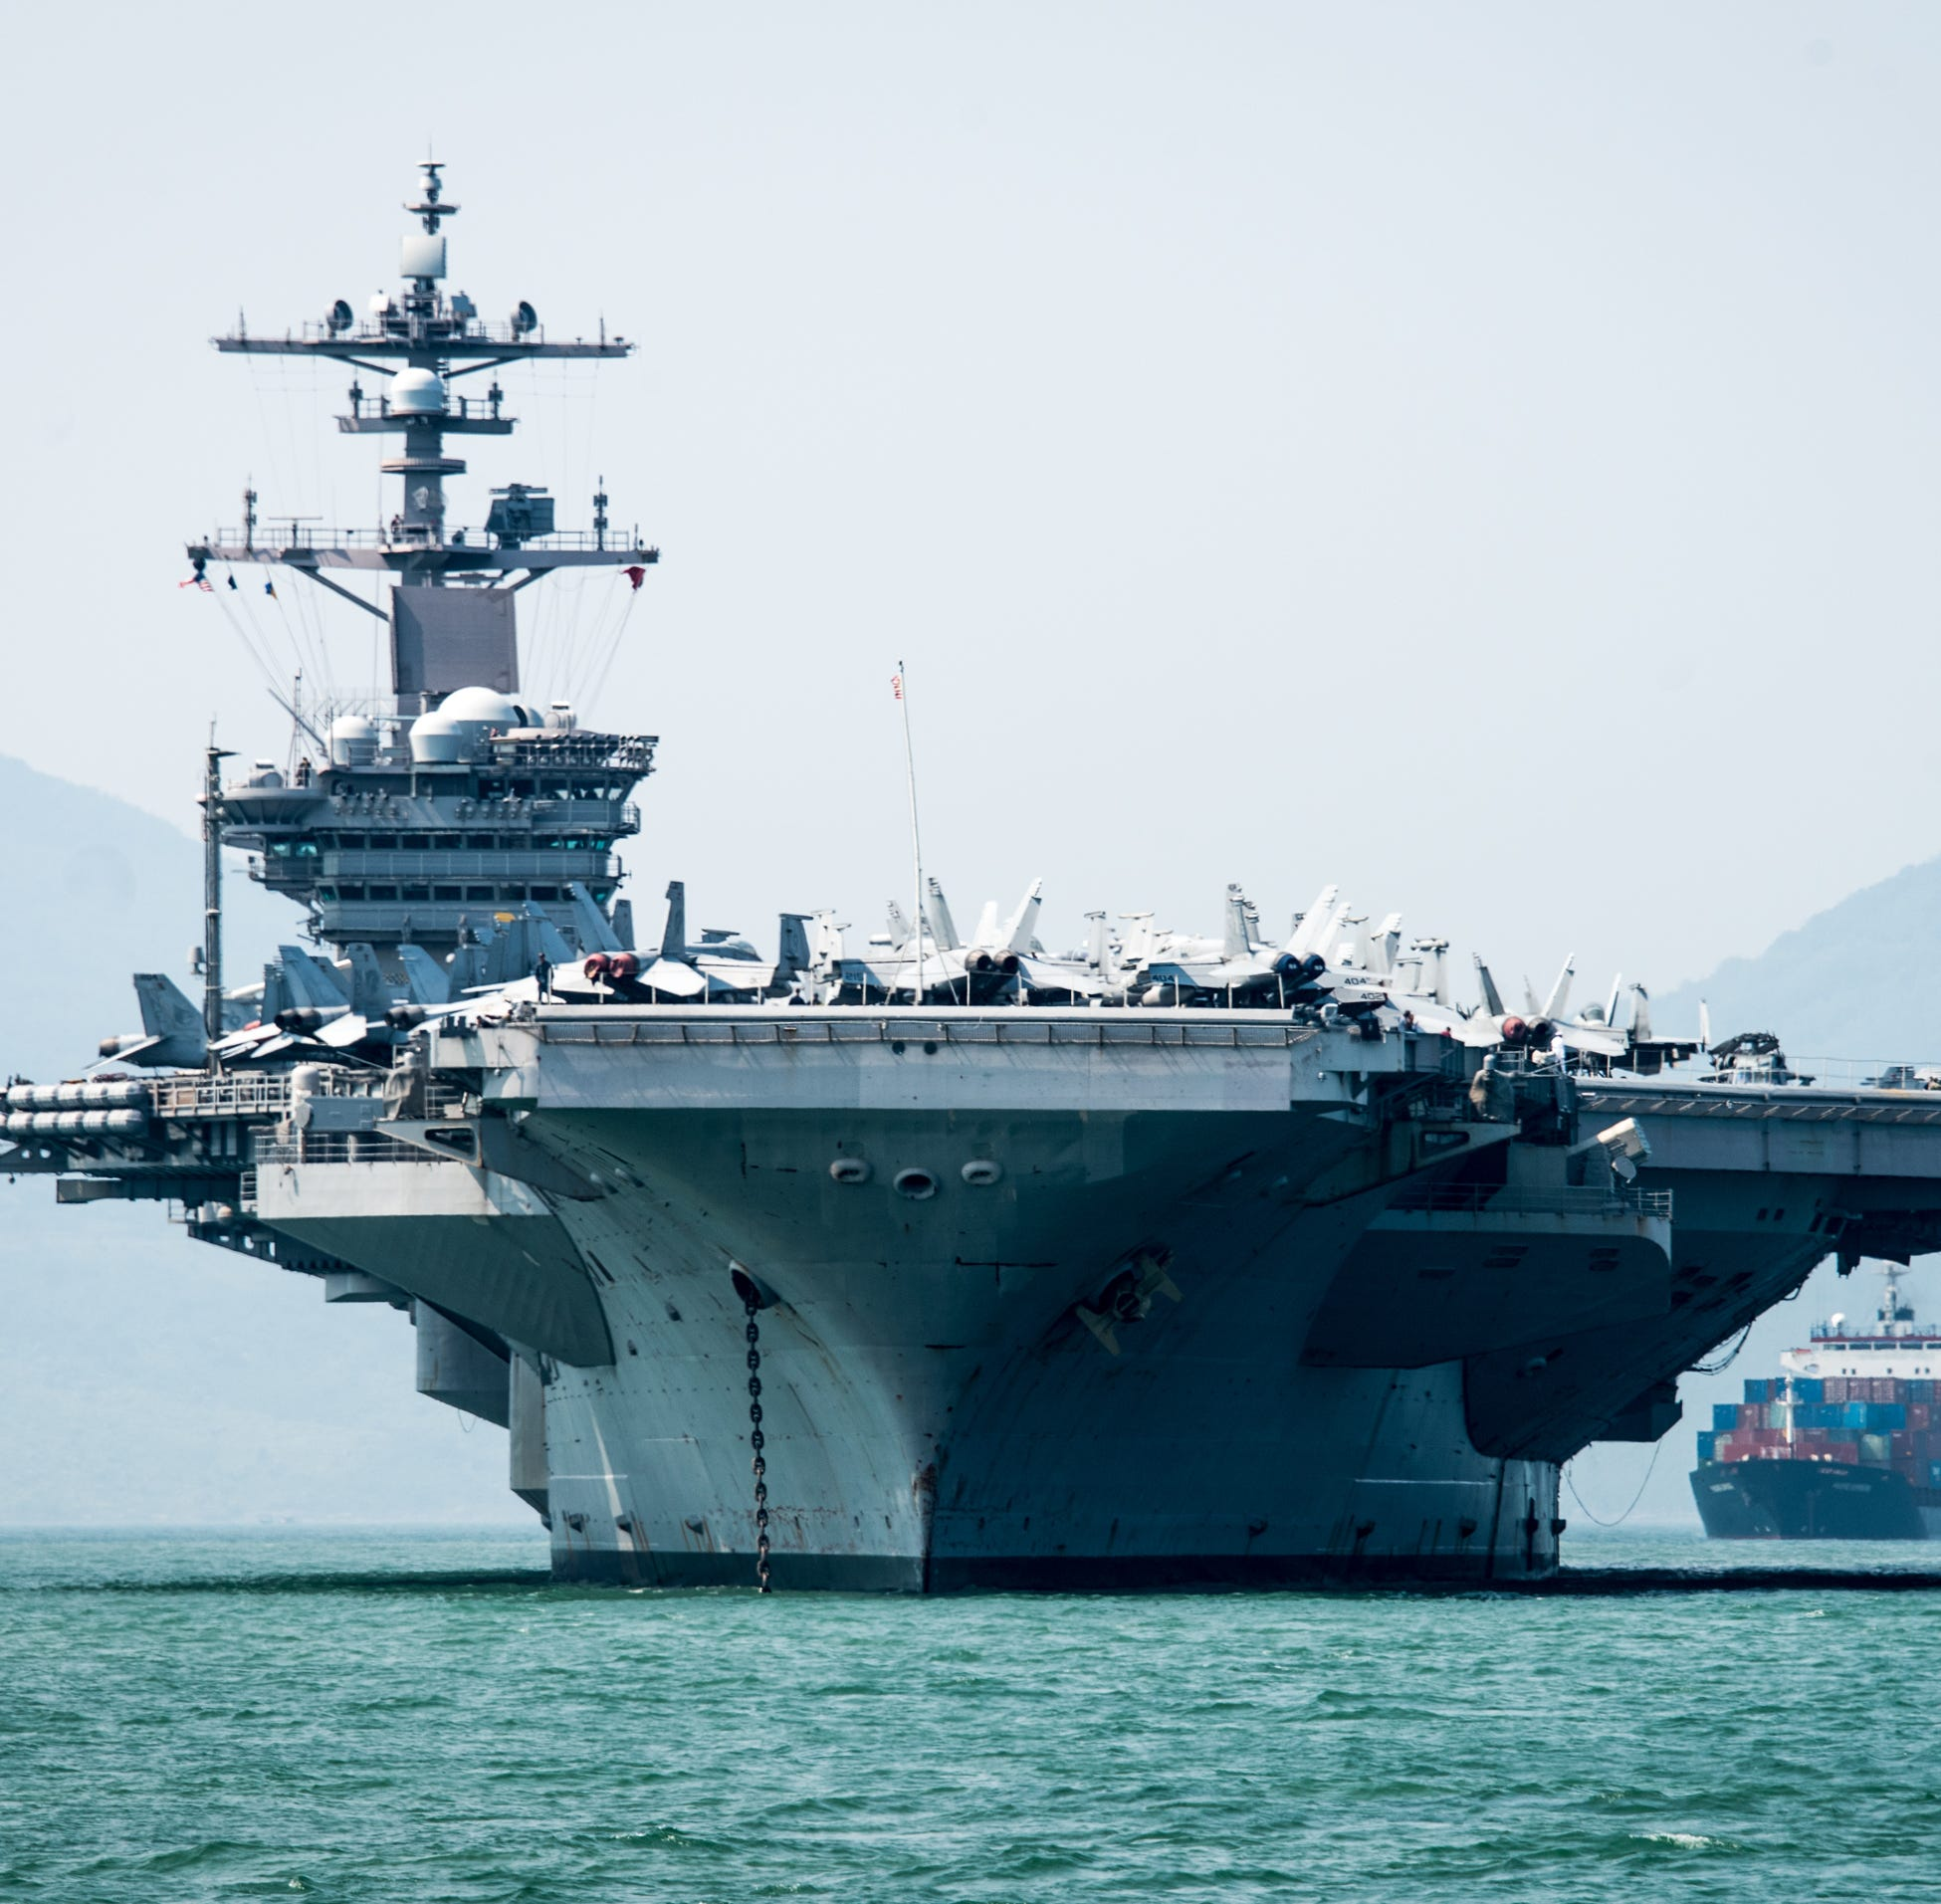 The aircraft carrier USS Carl Vinson (CVN 70) arrives in Da Nang, Vietnam, for a scheduled port visit March 5, 2018. The Carl Vinson Strike Group is in the Western Pacific as part of a regularly scheduled deployment.